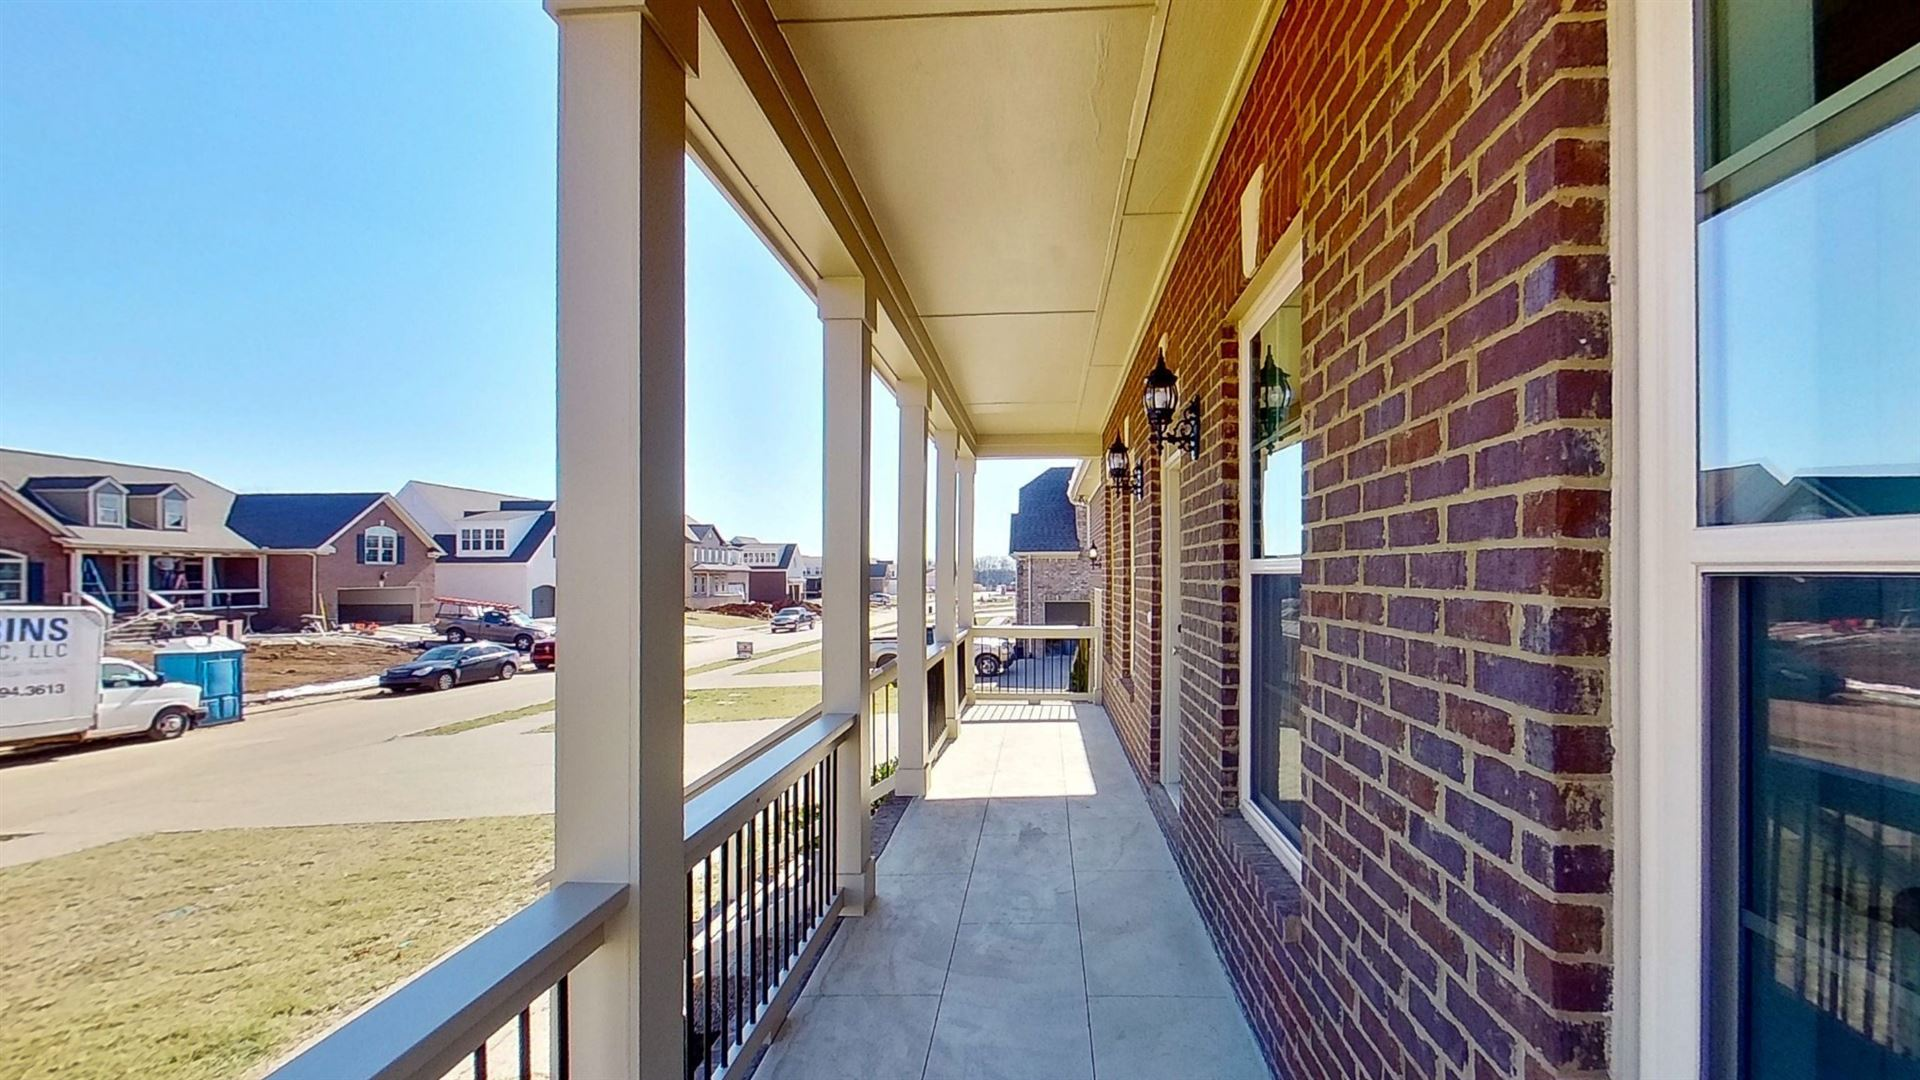 Photo of 8028 Brightwater Way Lot 491, Spring Hill, TN 37174 (MLS # 2262267)